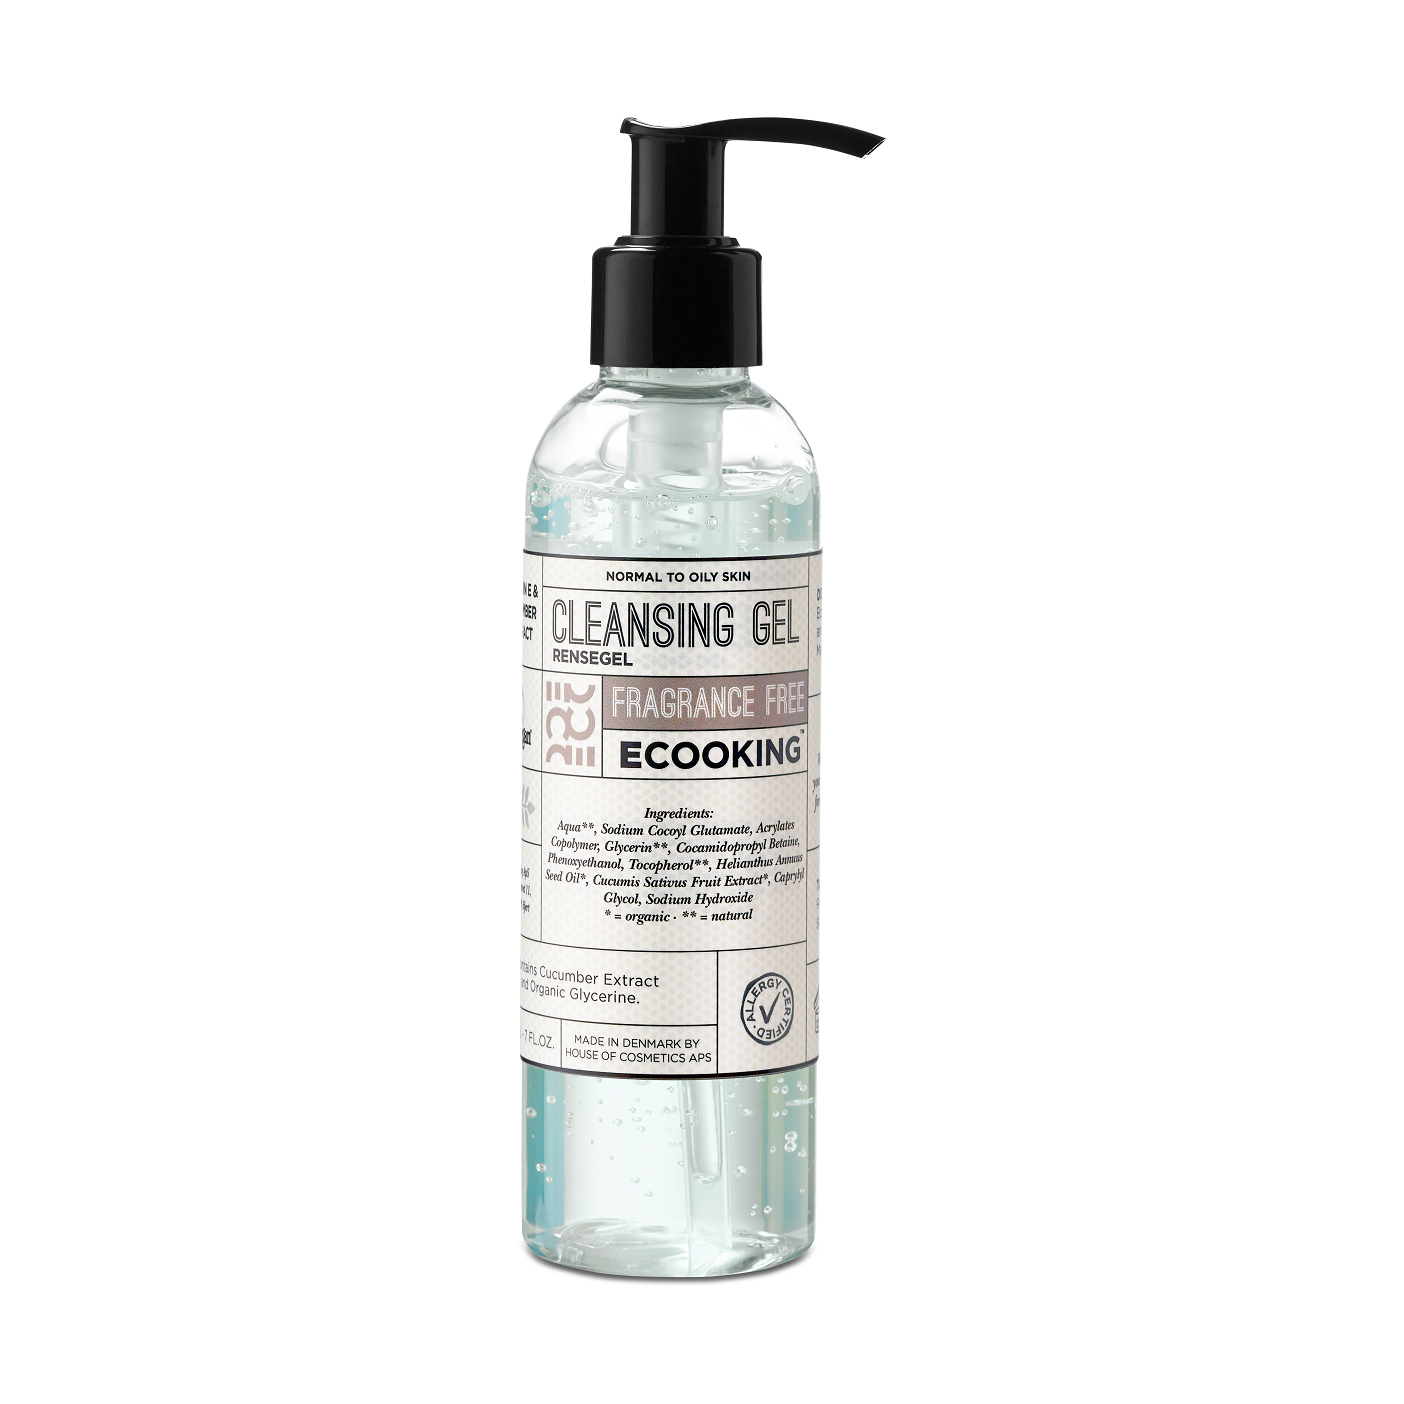 Ecooking - Cleansing Gel Fragrance Free 200 ml